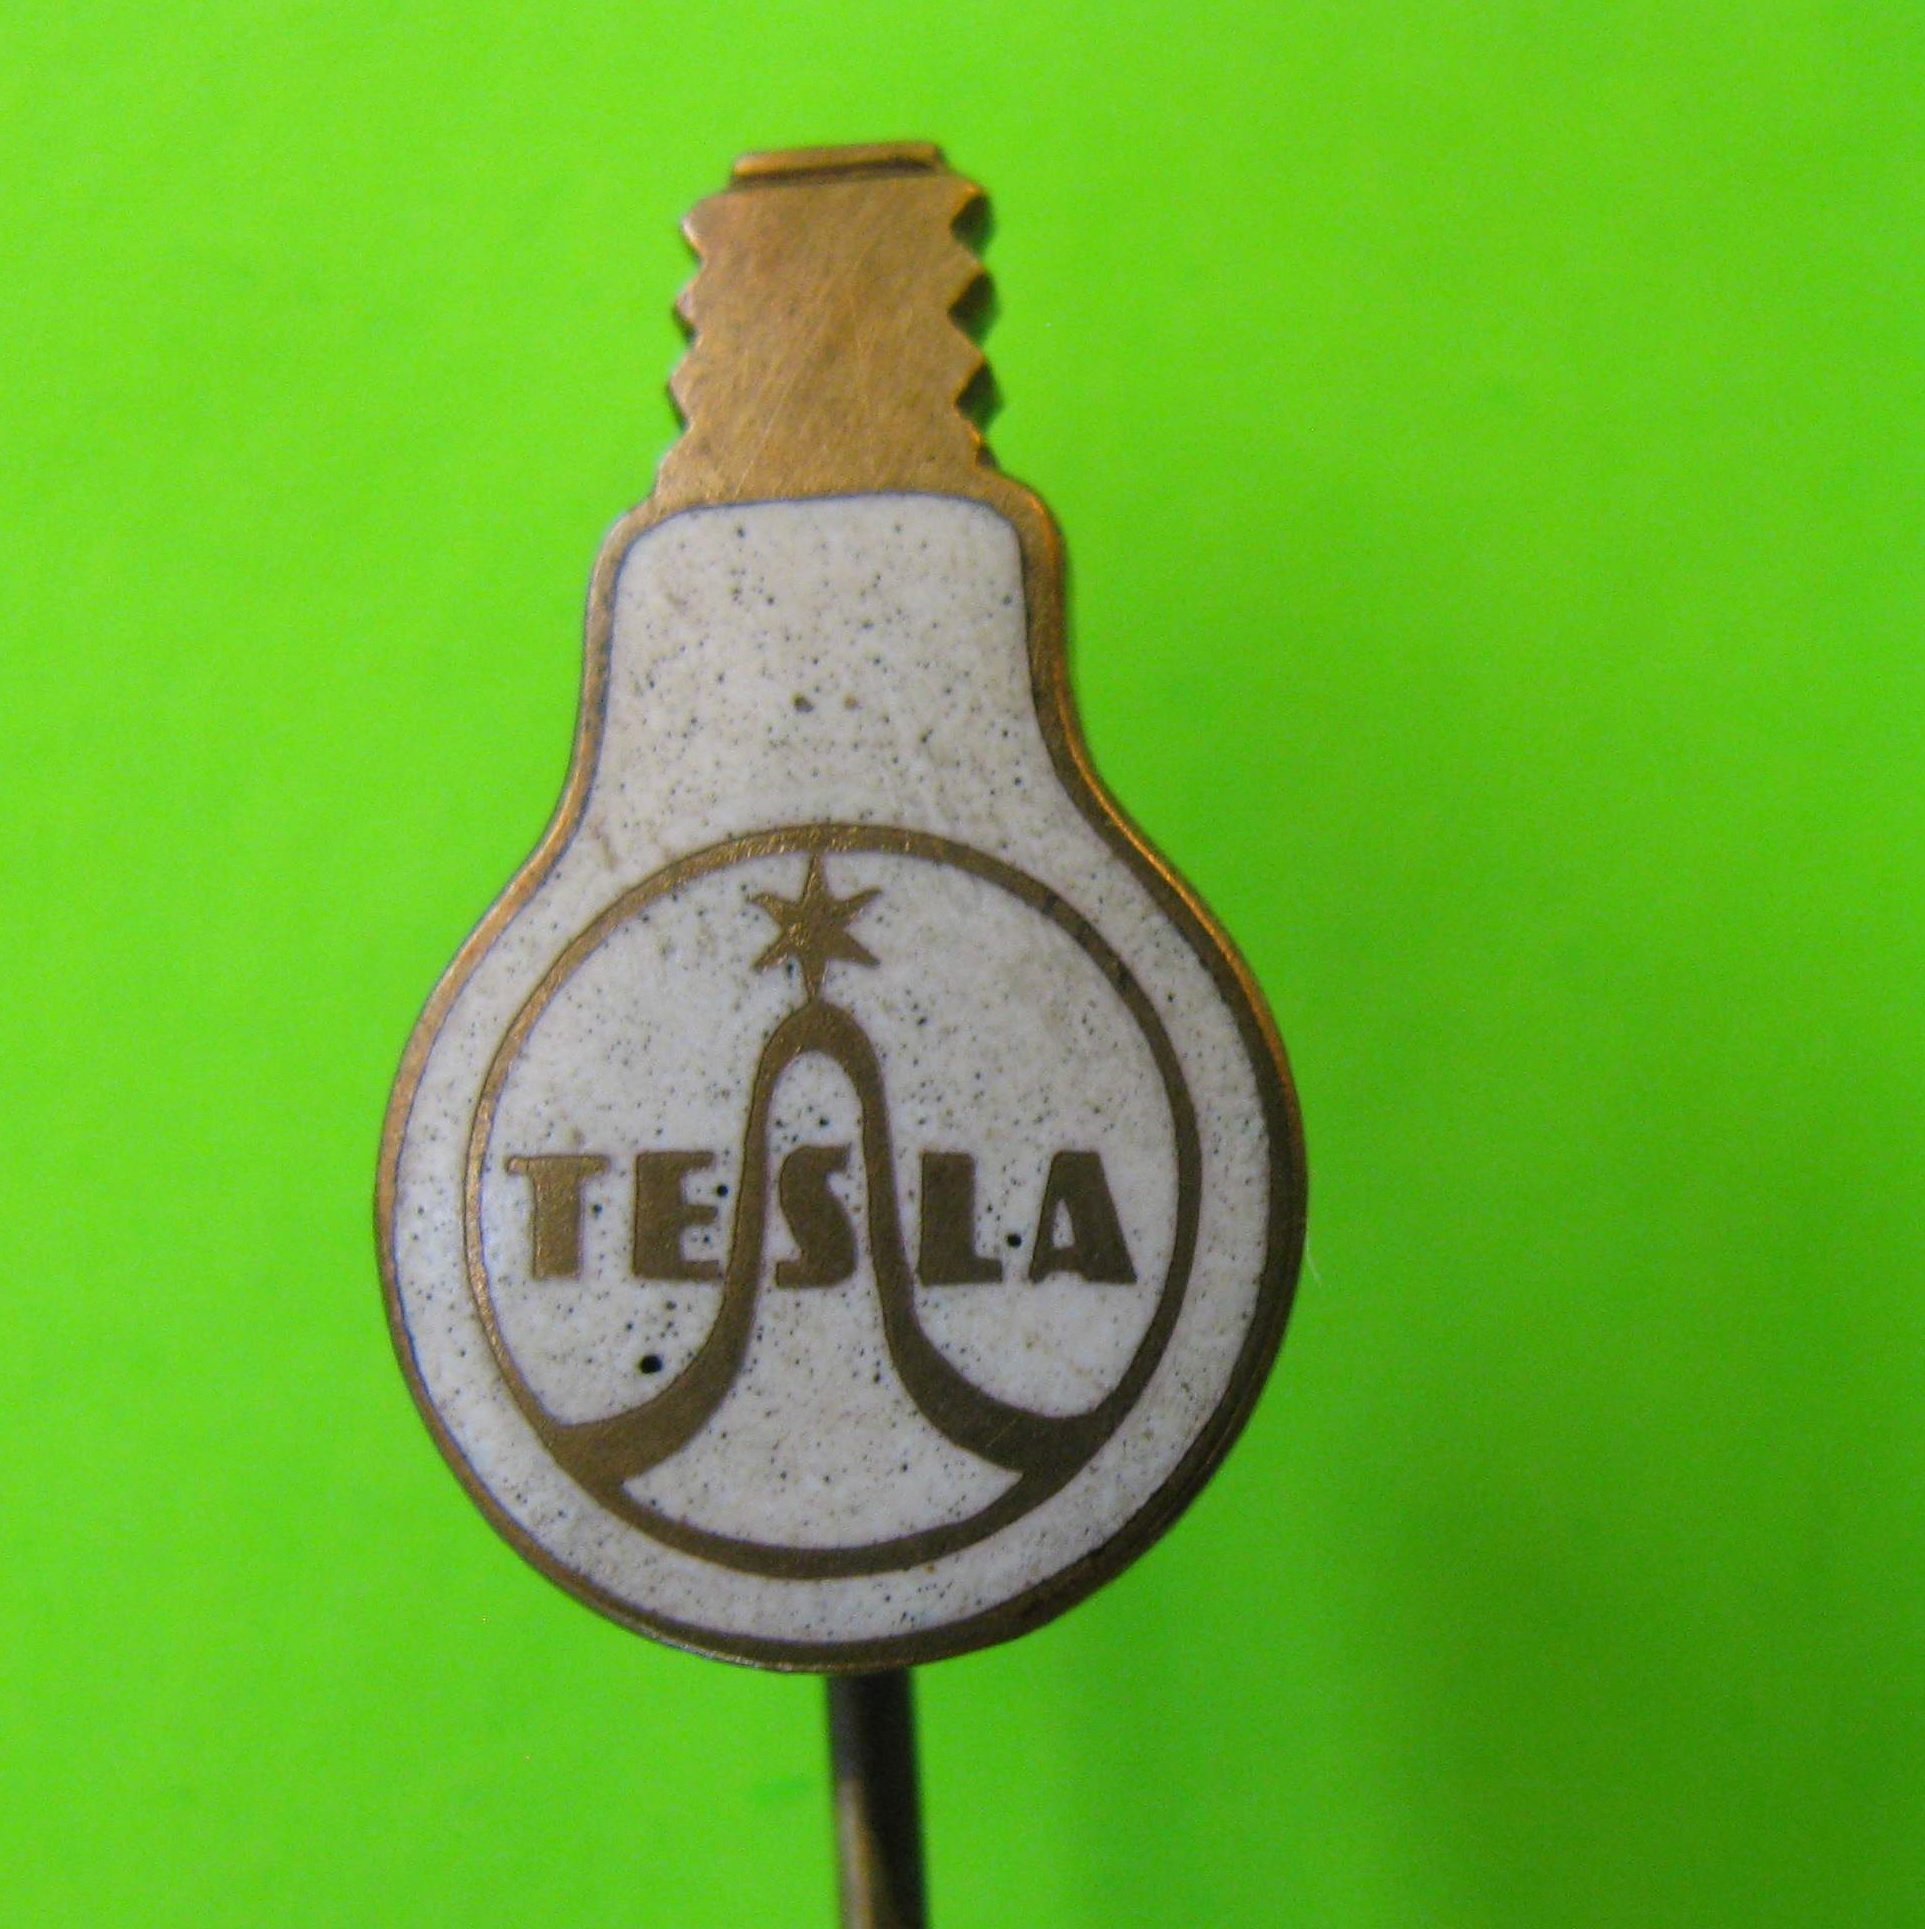 Vintage Tesla Stick Pin, Metal with White Colored Light Bulb Background